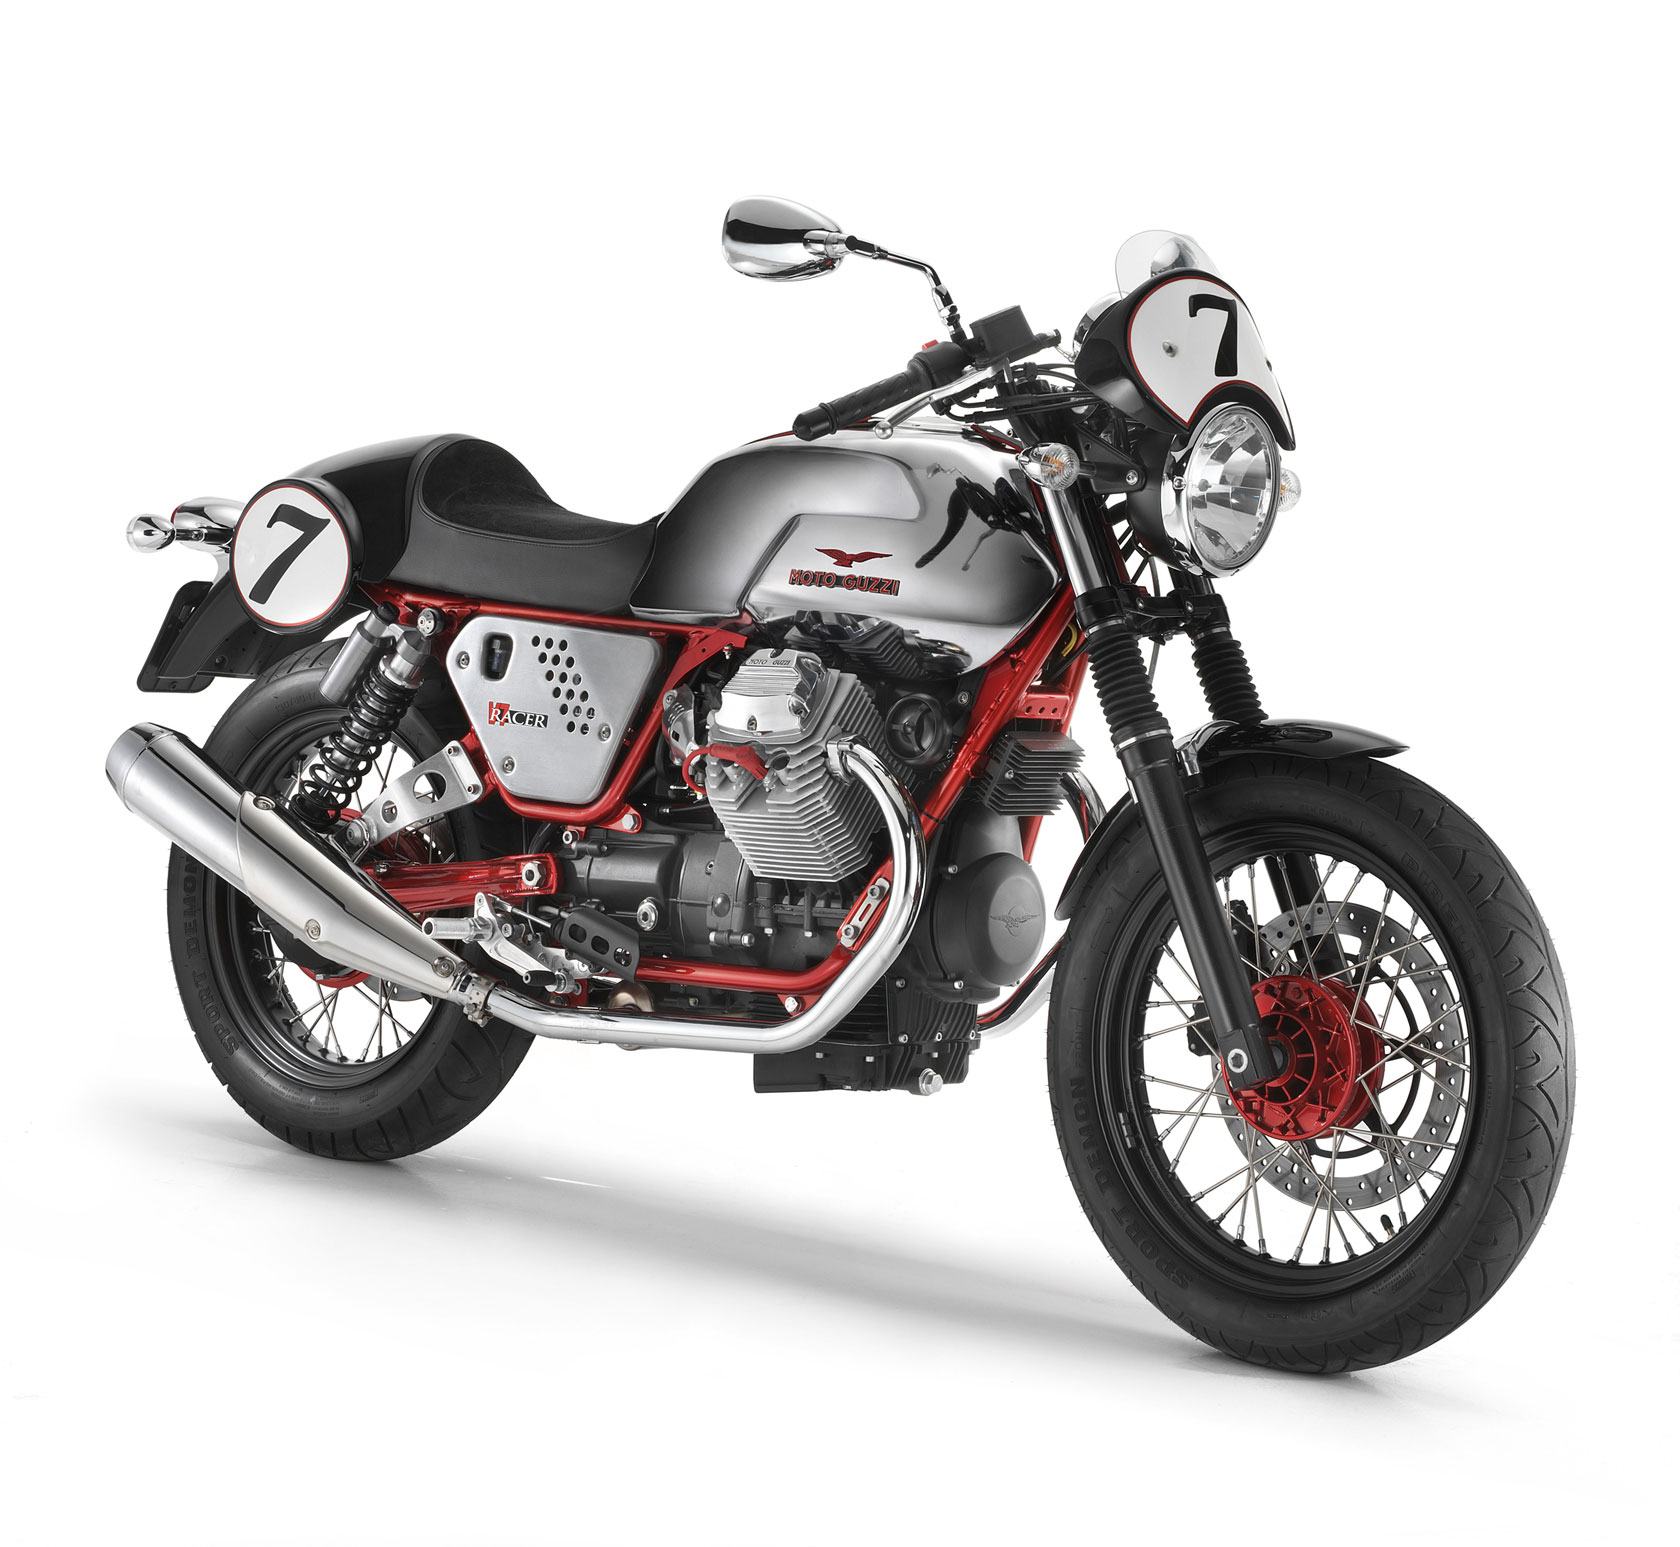 BMW S 1000 RS - Motorcycles Photo (15187338) - Fanpop